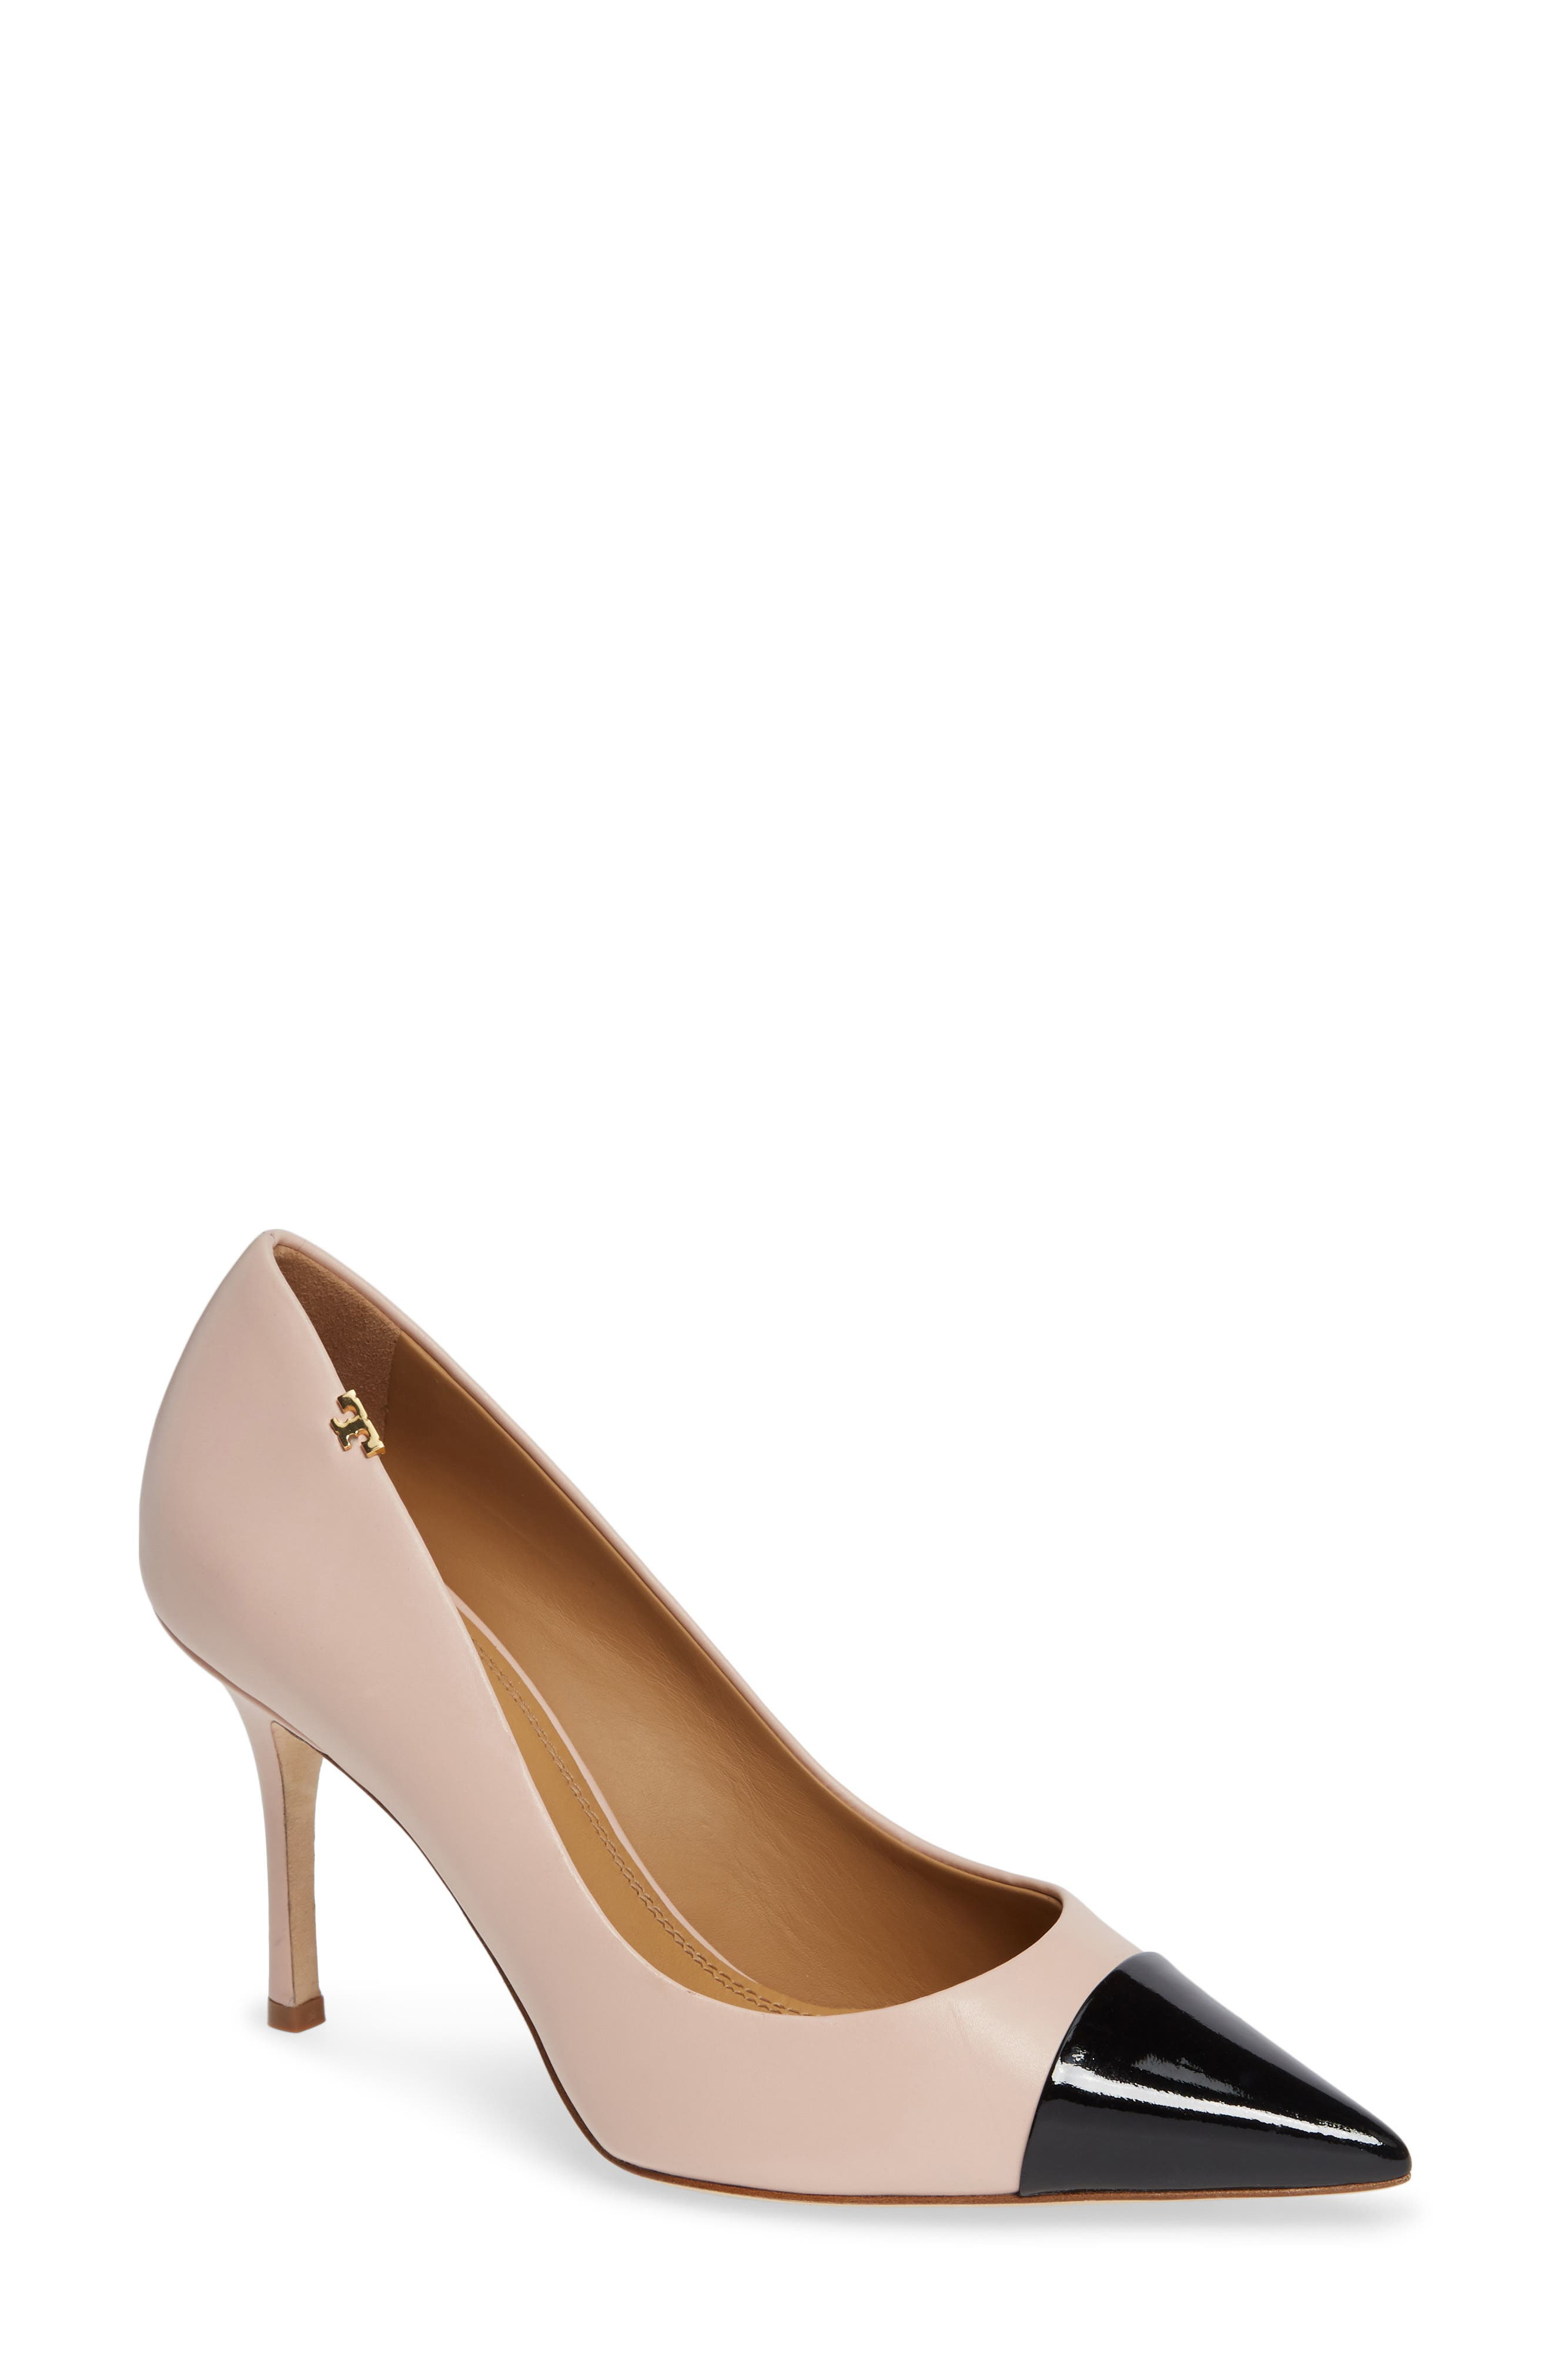 Women'S Penelope Cap Toe Color-Block Leather Pumps in Sea Shell Pink/Perfect Black